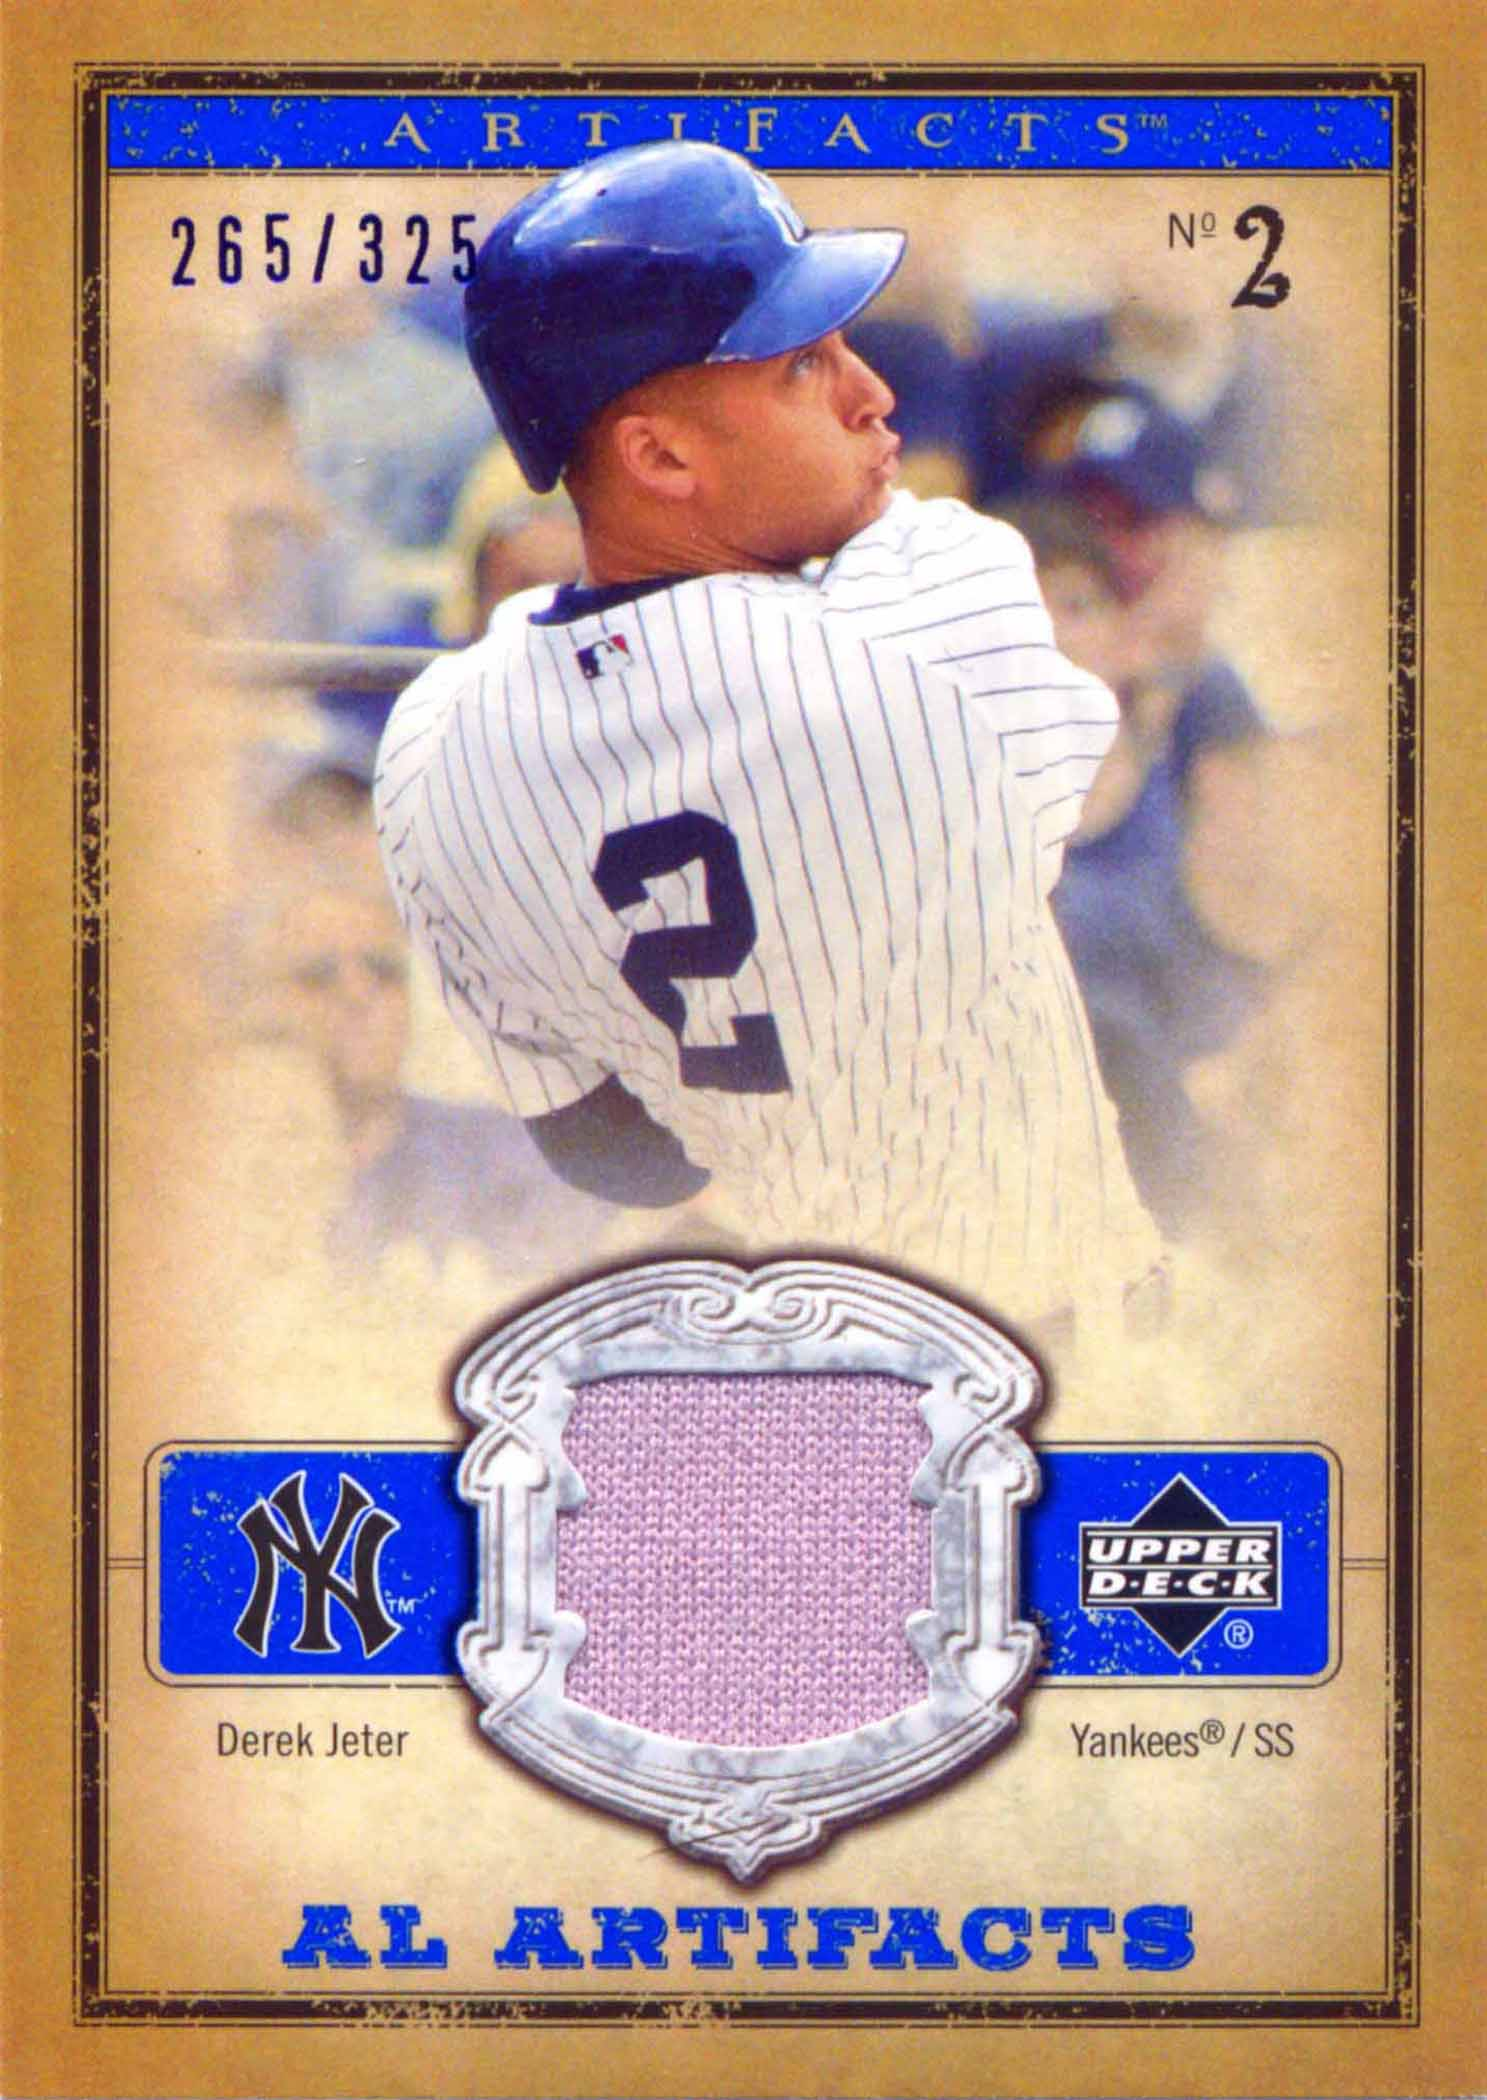 2005 Topps Gallery Gallo's Gallery